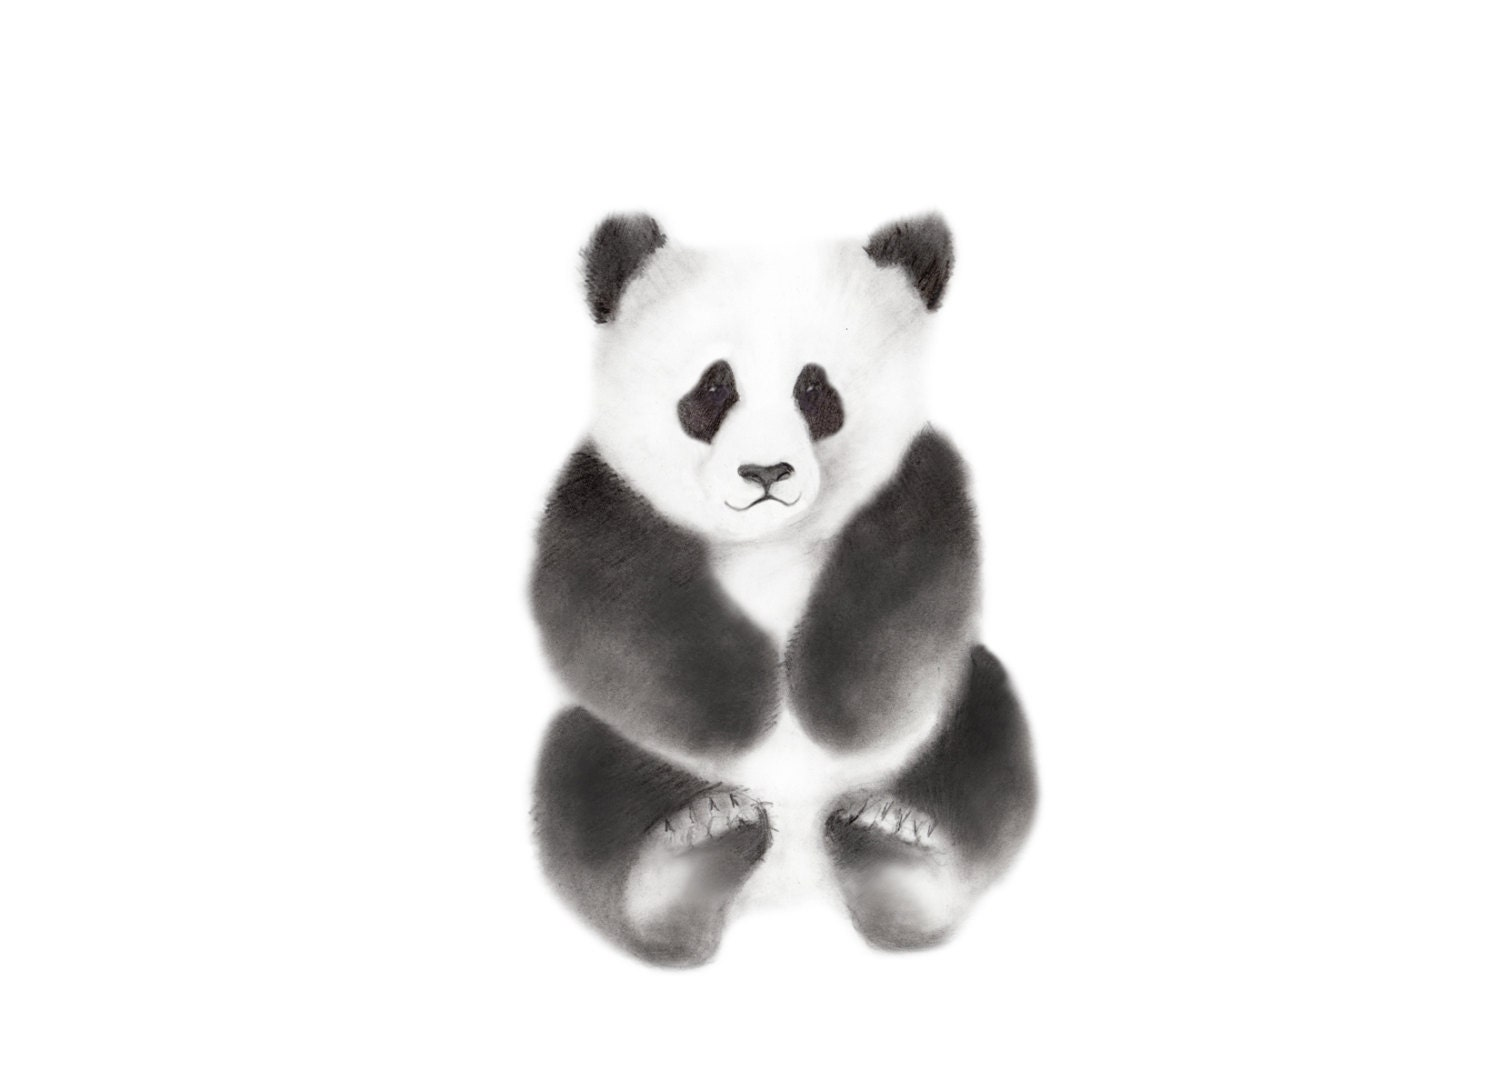 Panda nursery art animal pencil drawing panda bear nursery sketch print gender neutral baby grey wall decor black and white nursery